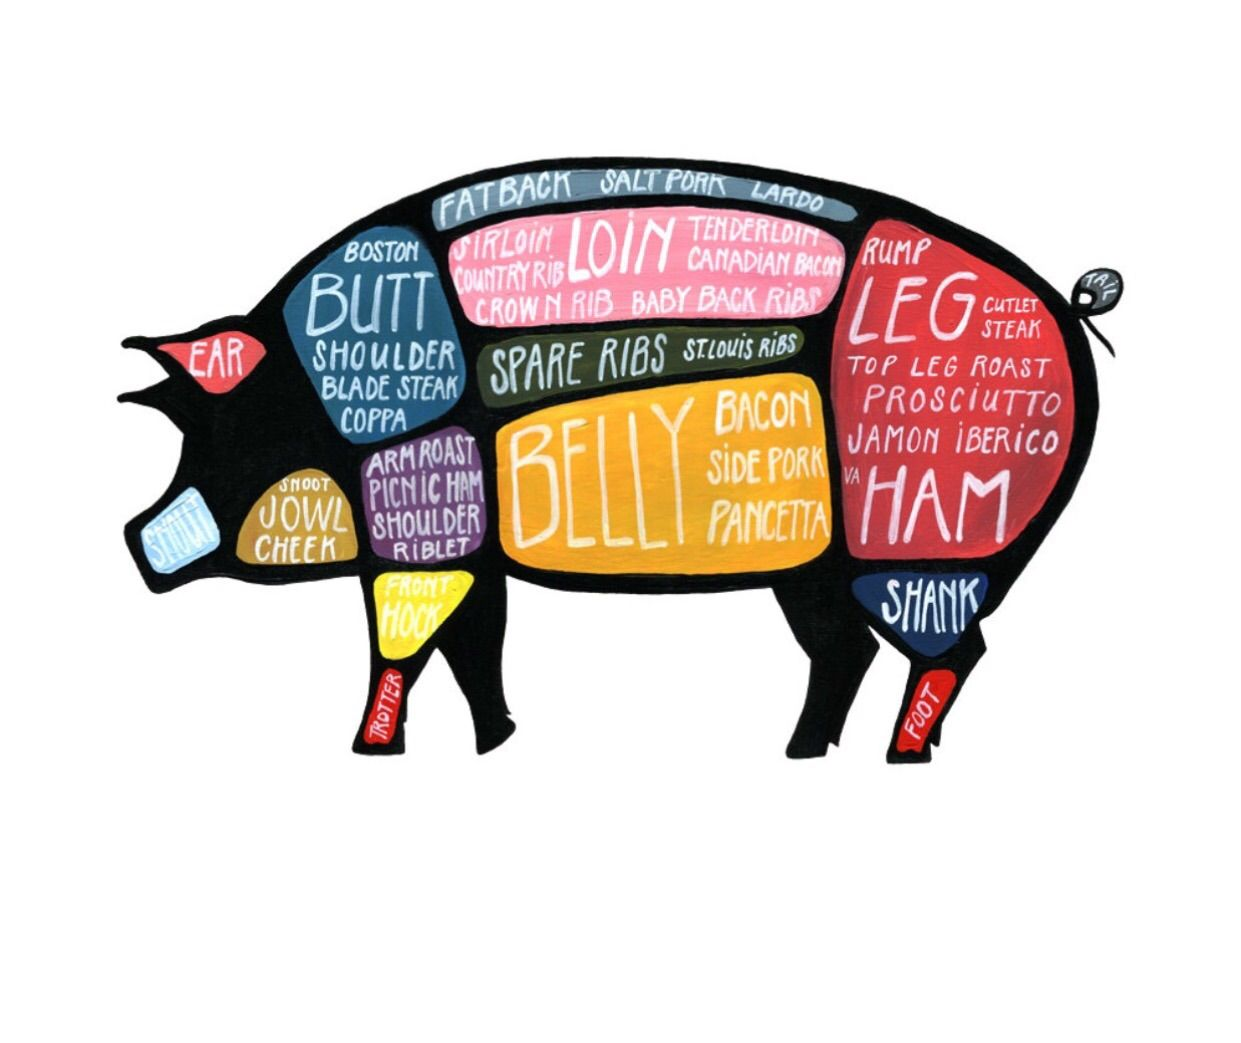 pig butcher diagram use every part of the pig detailed cuts of use every part pig diagram [ 1241 x 1043 Pixel ]